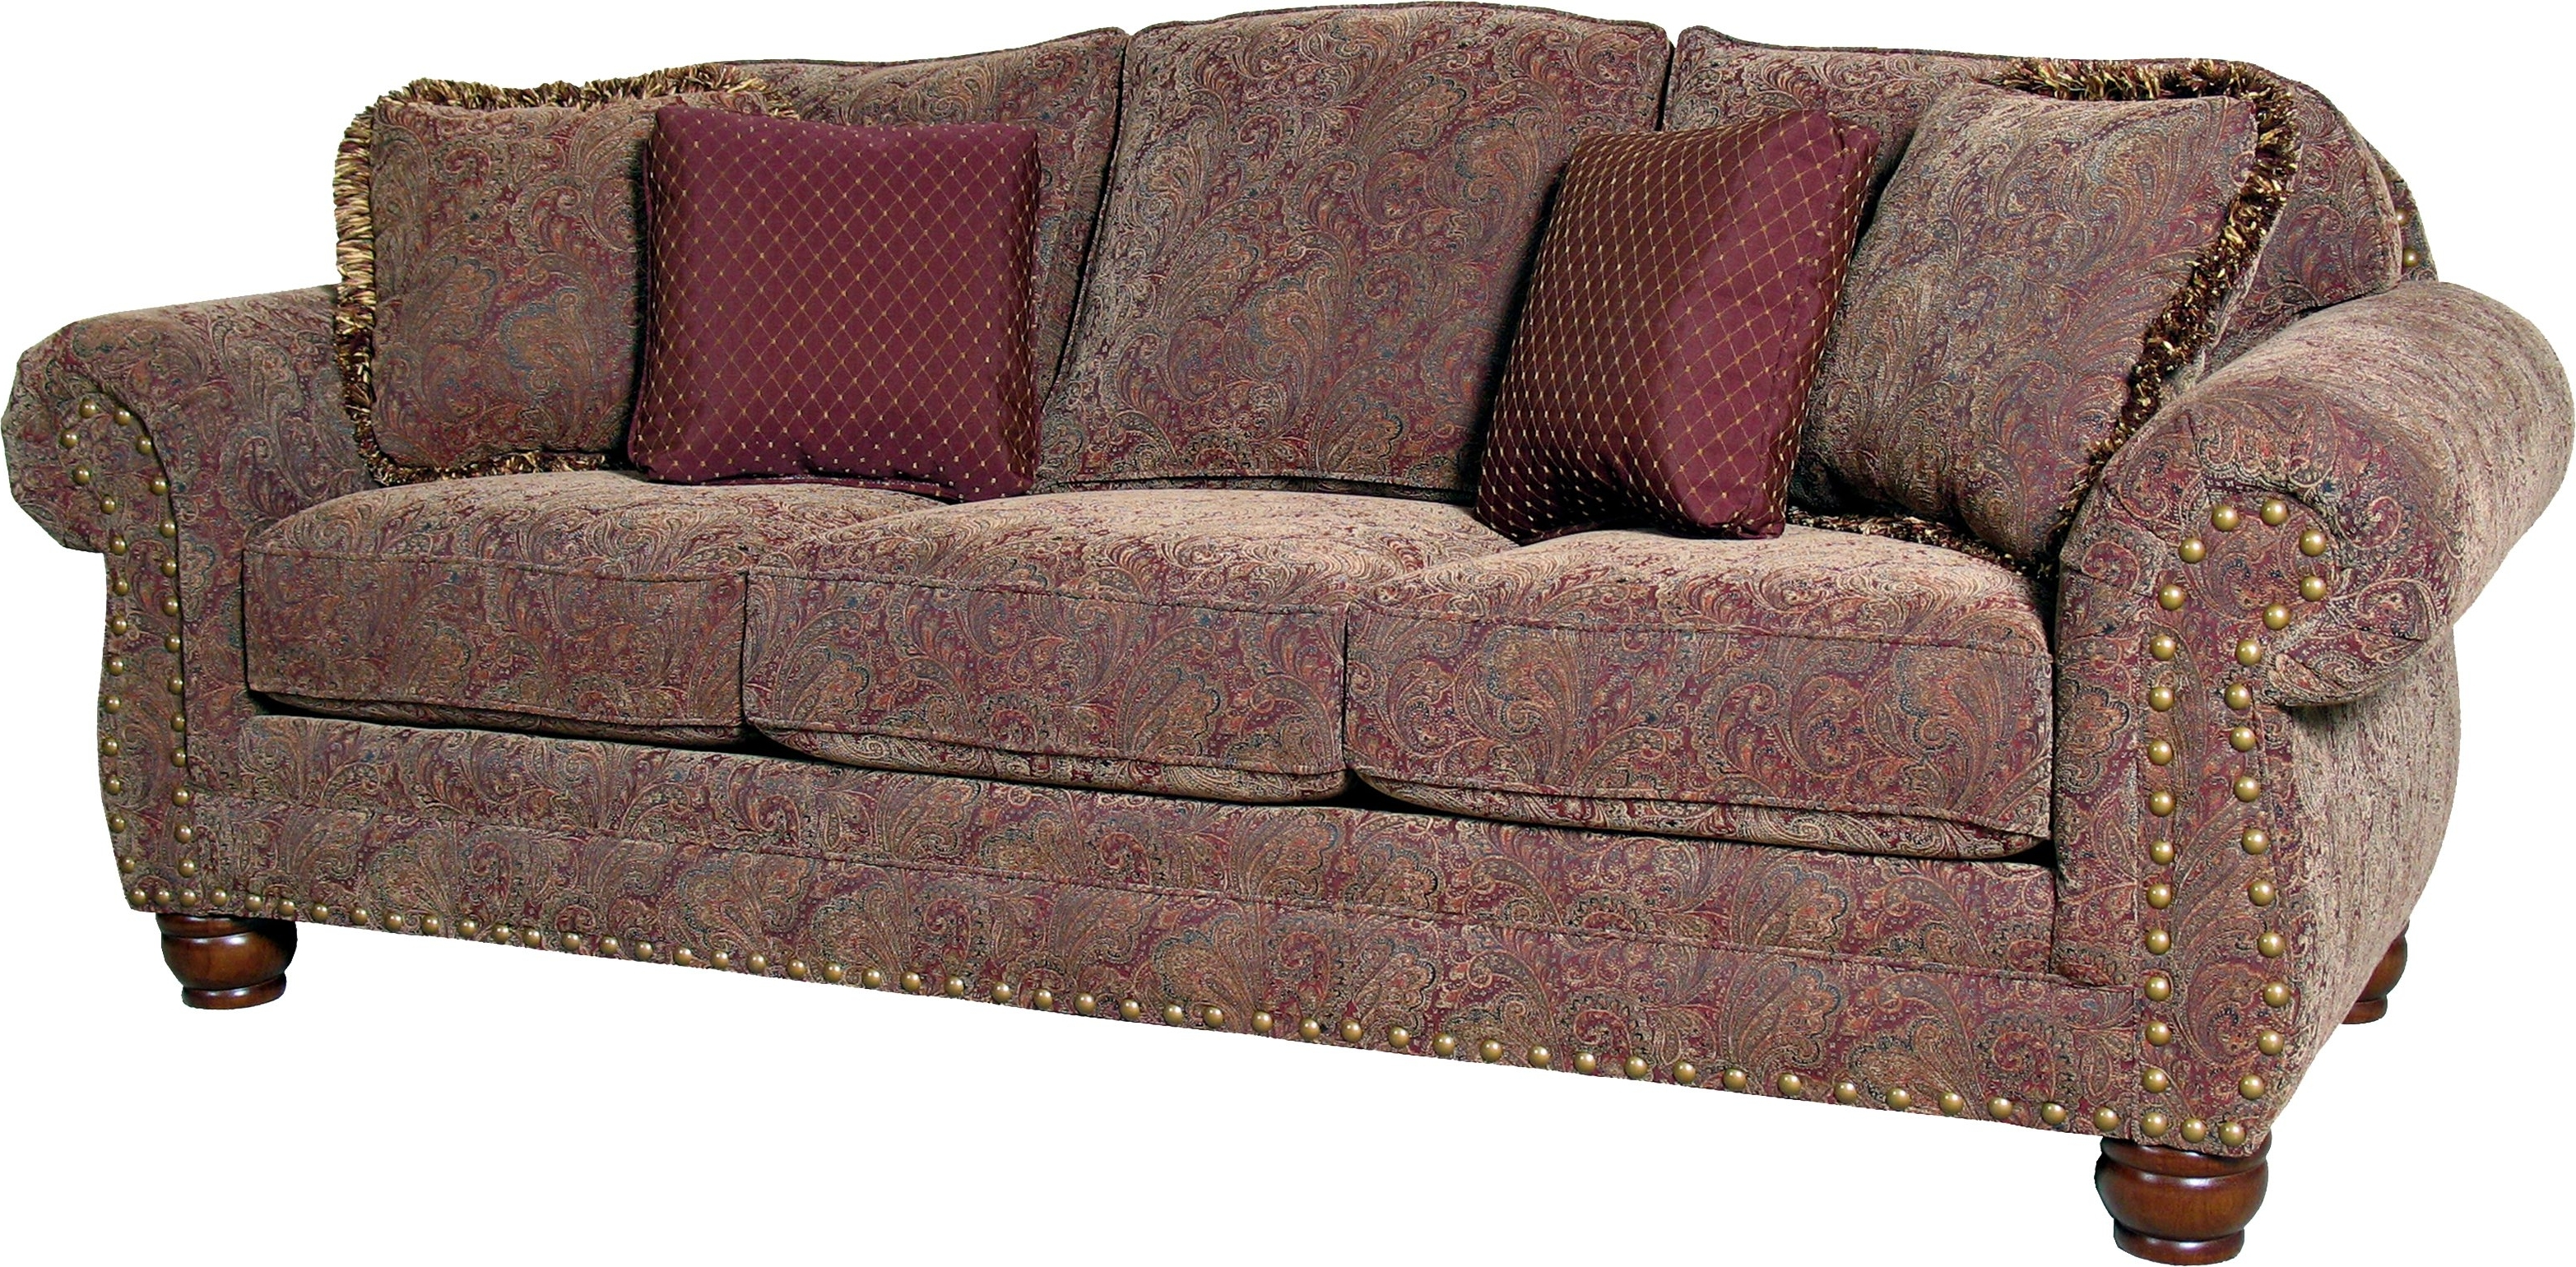 Widely Used Pandora/antique Sofa (View 2 of 15)